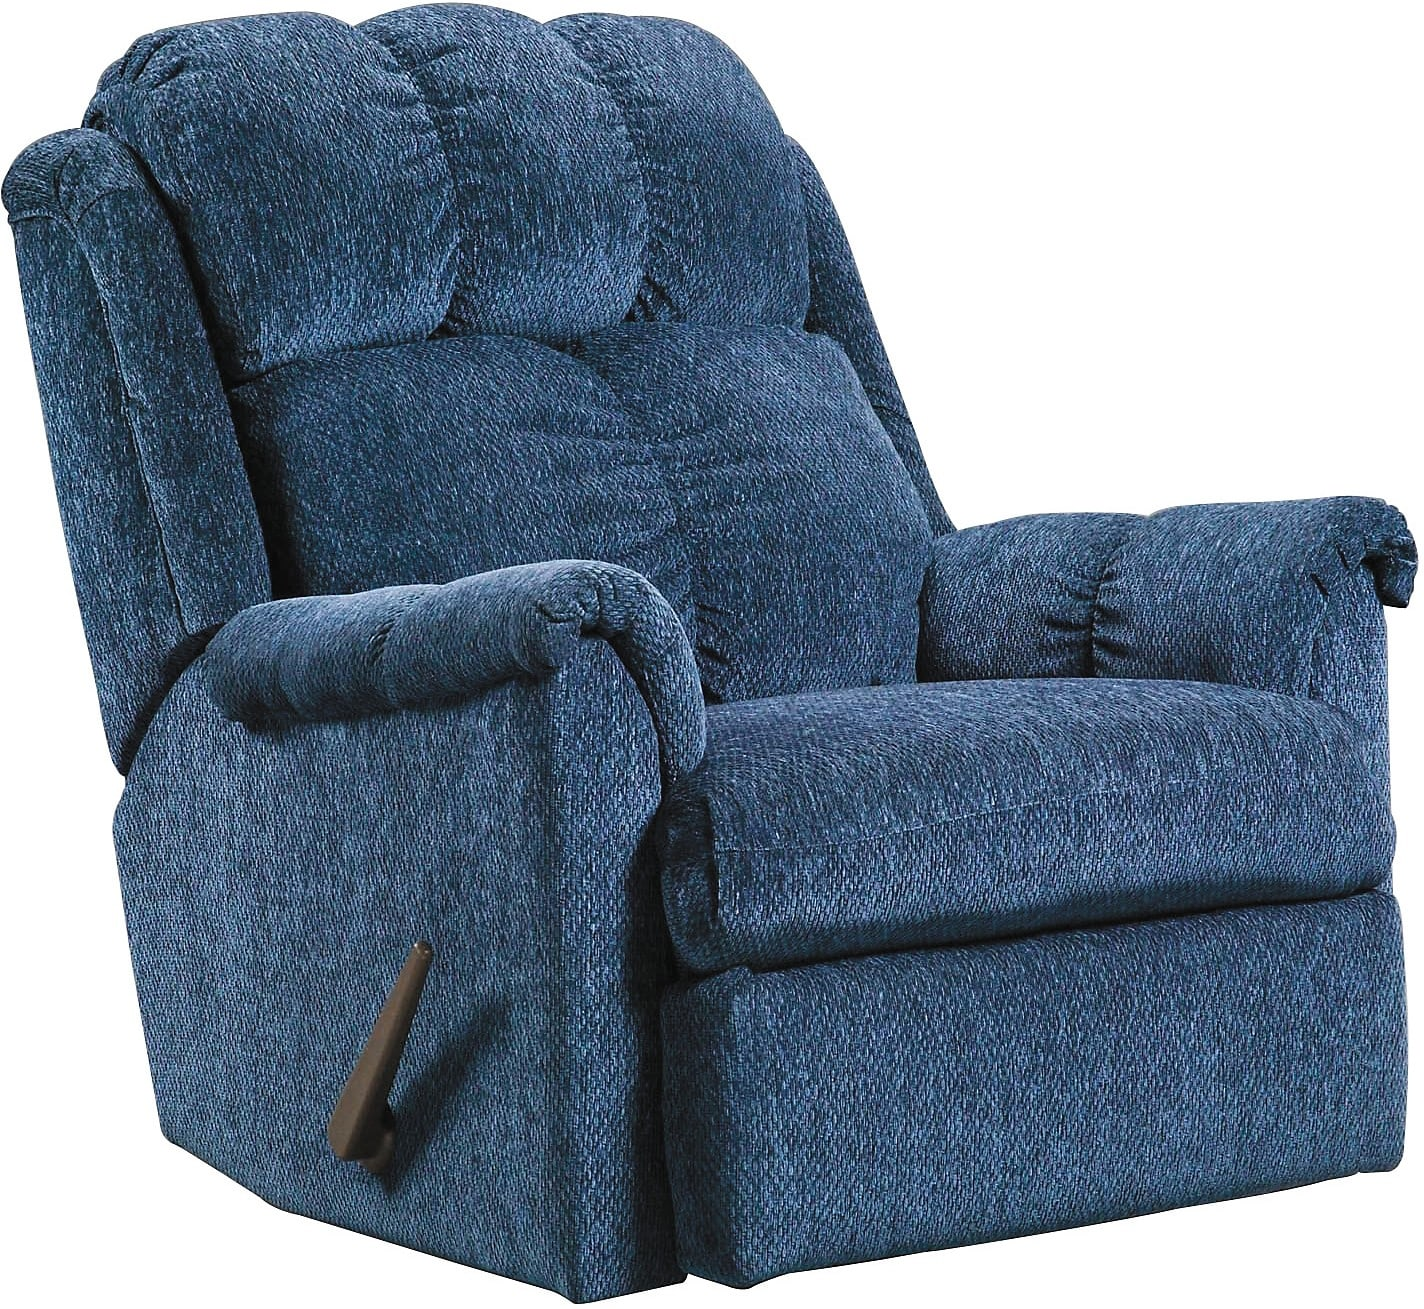 Brown Chenille Rocker Recliner The Brick